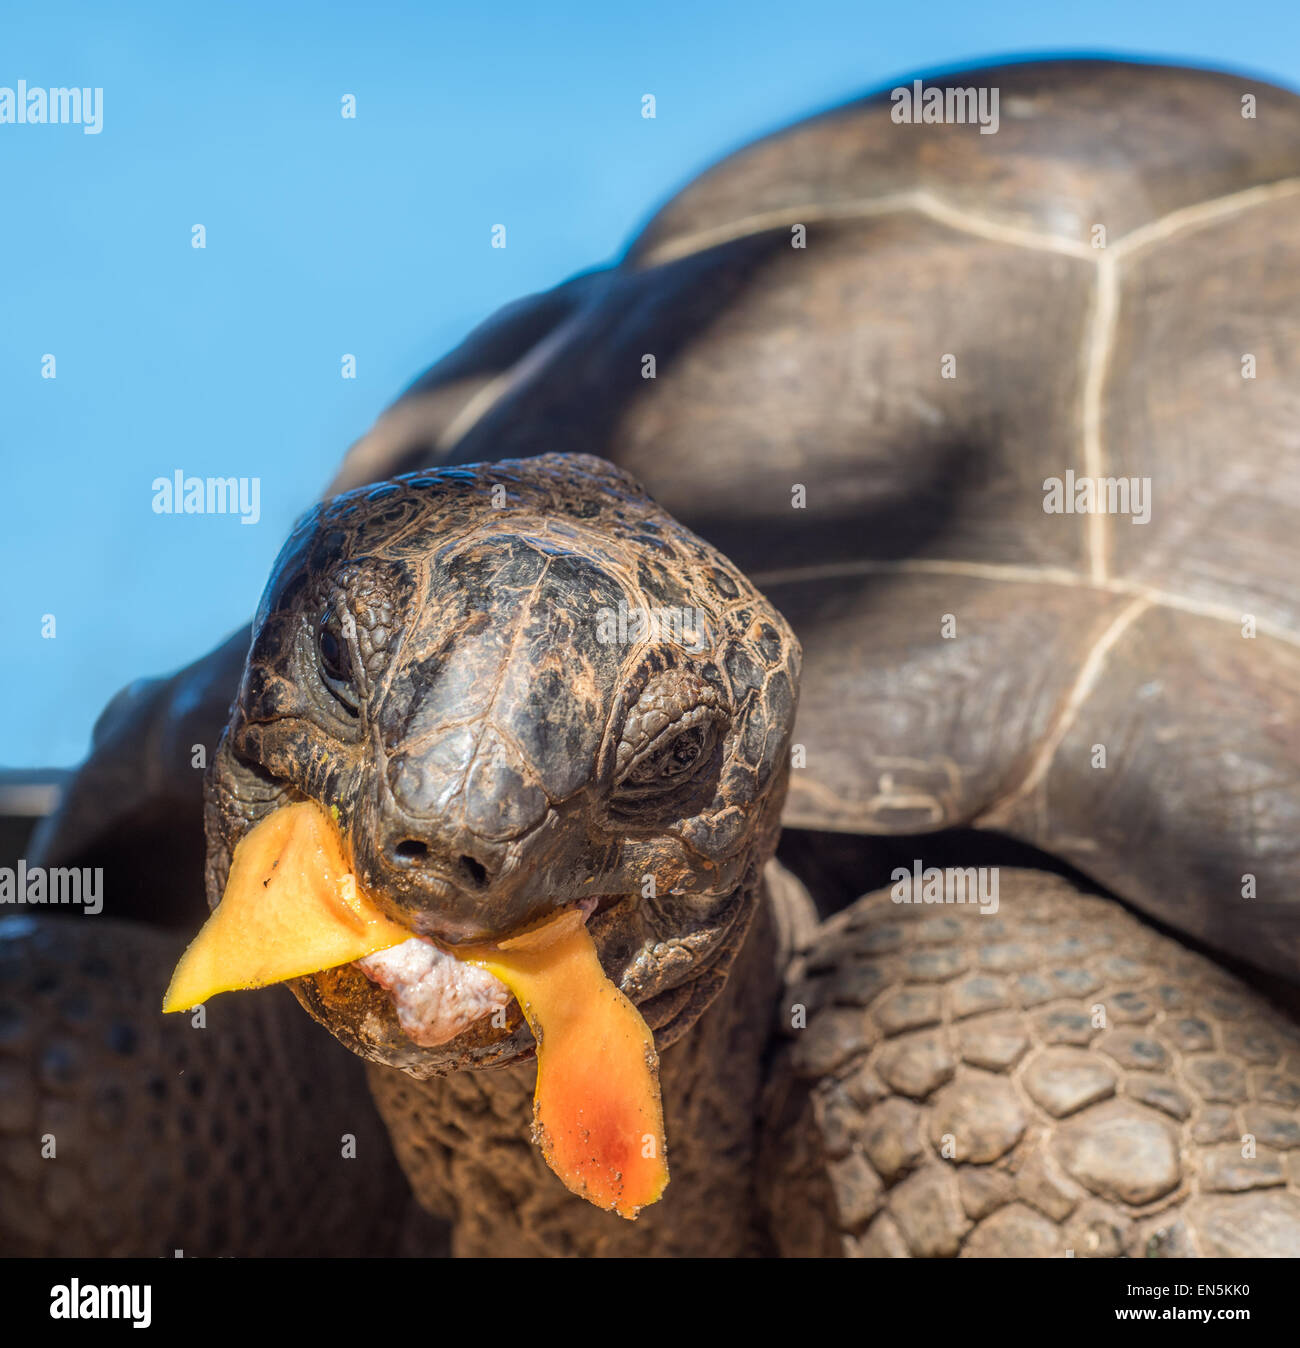 Tortue géante des Seychelles Photo Stock